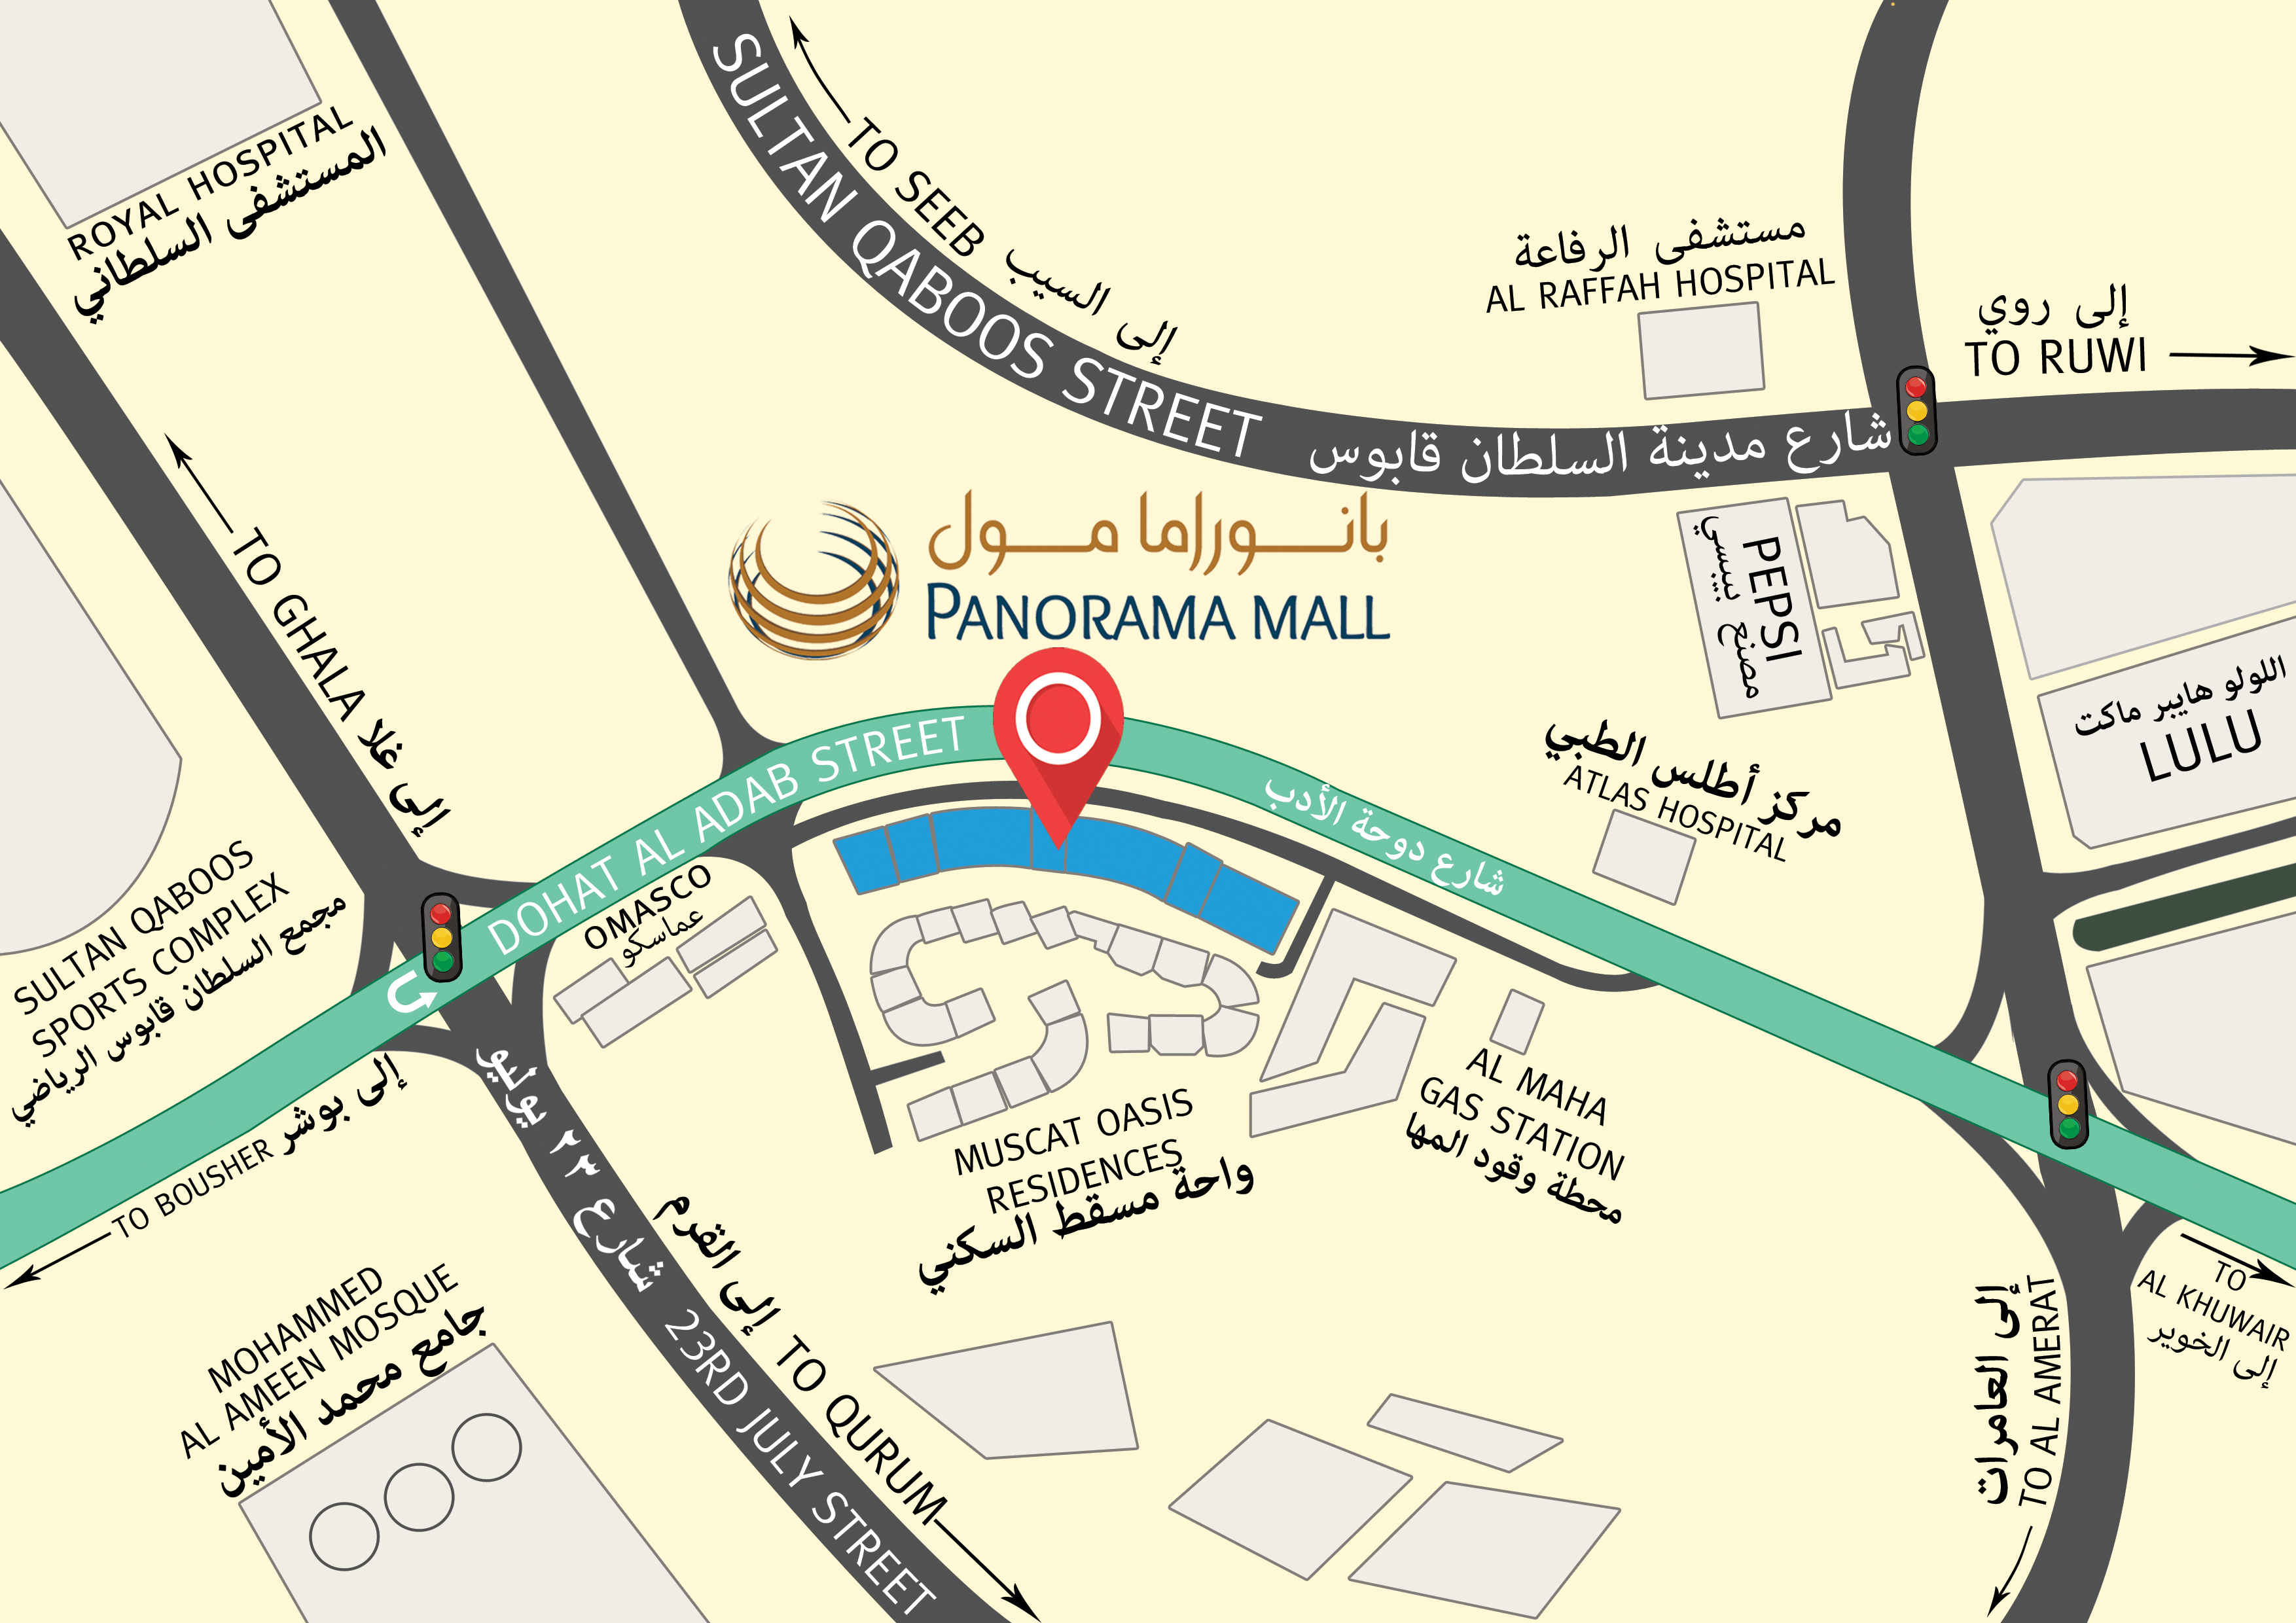 Find Us Panorama Mall - Find us map